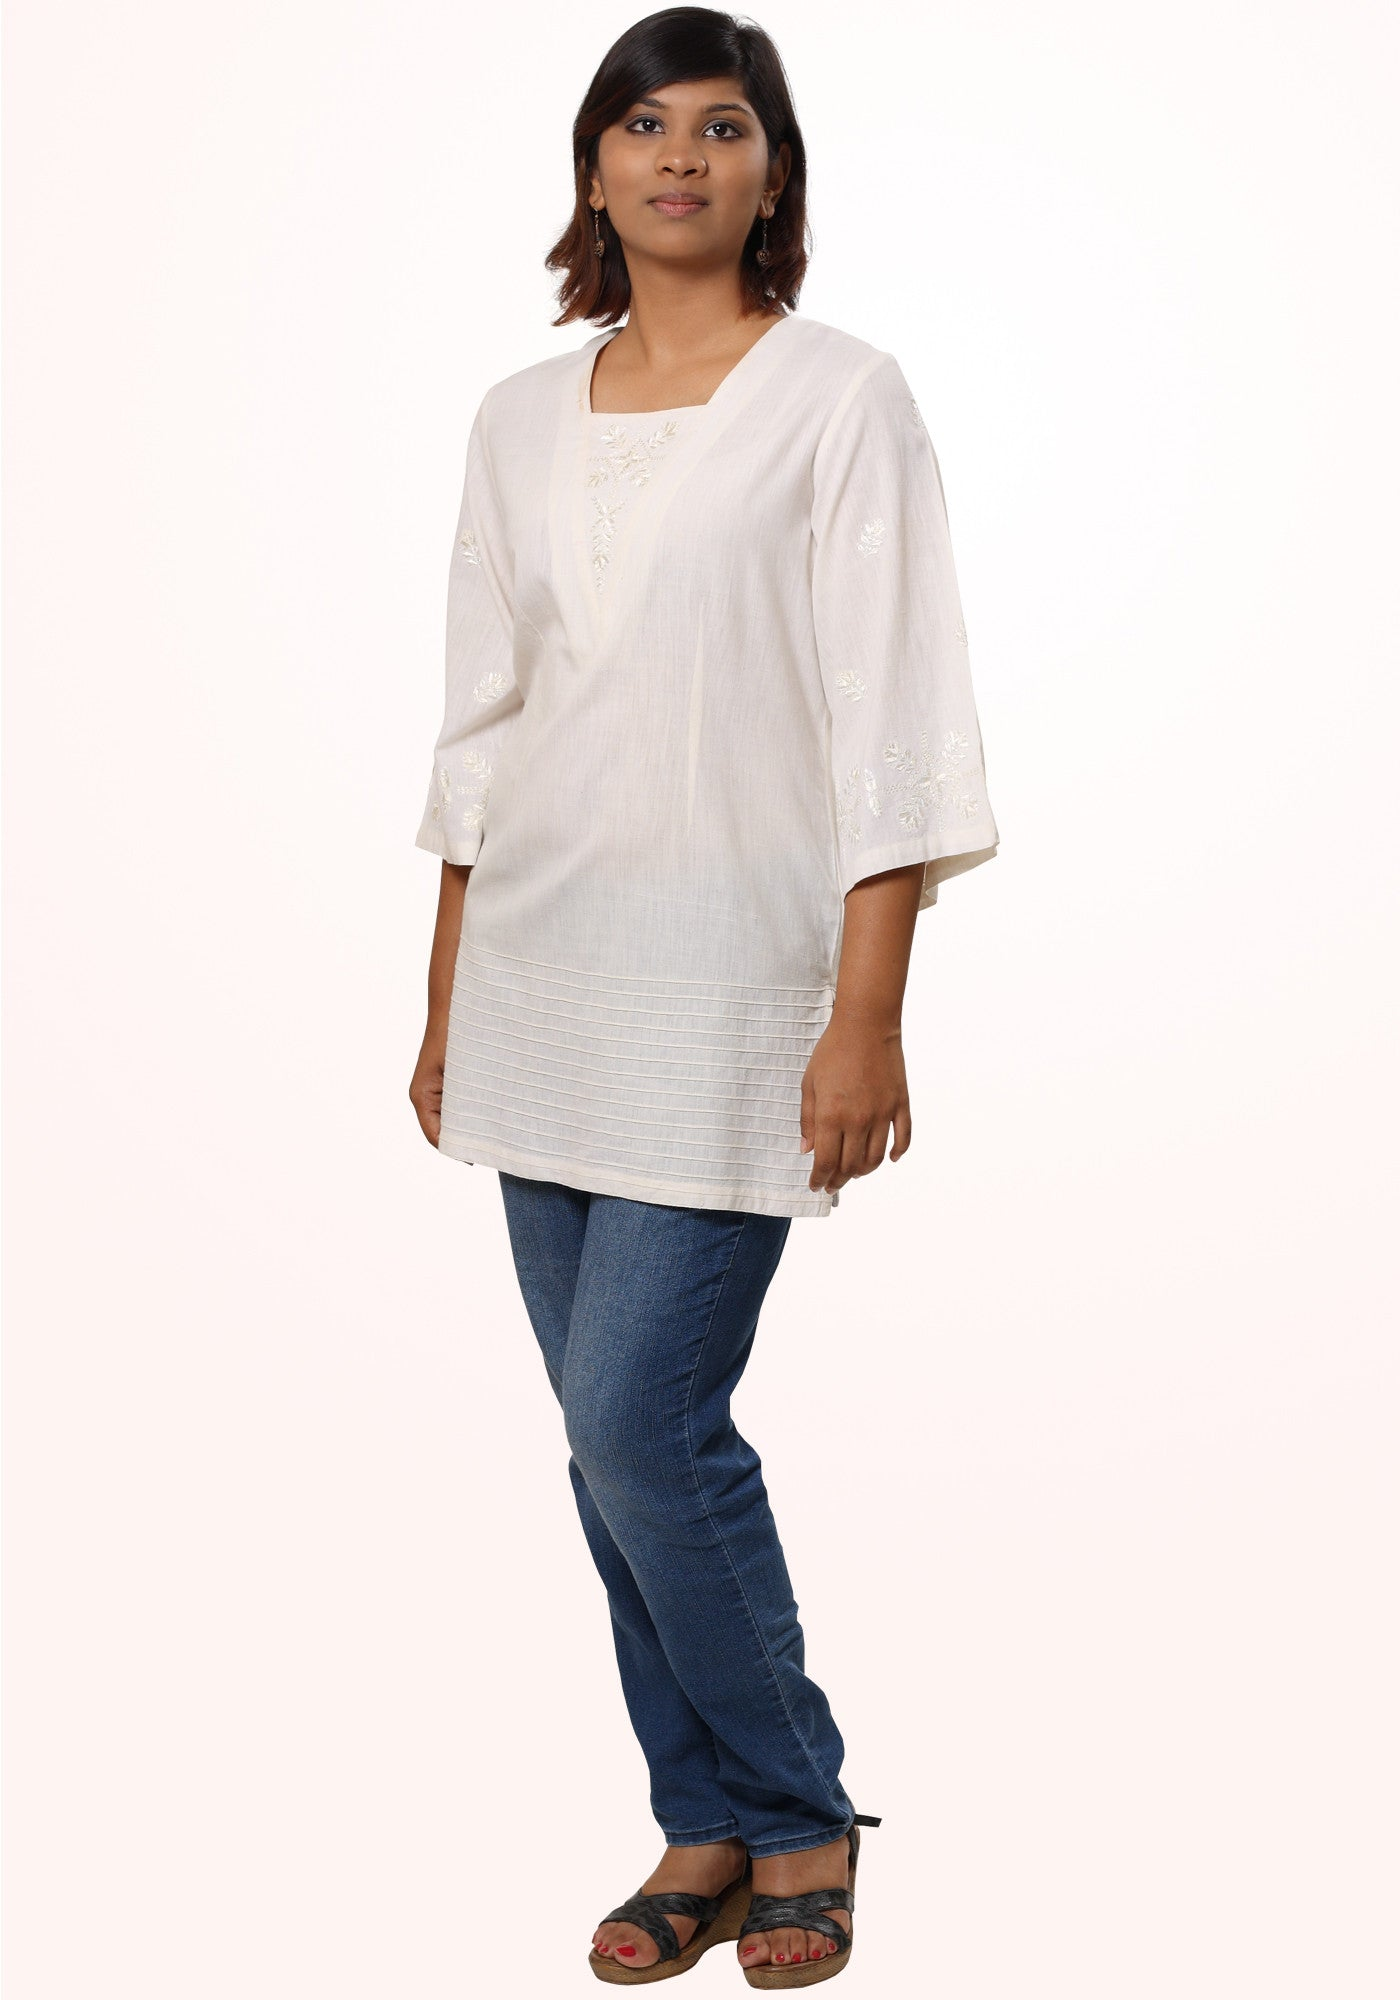 Embroidered Tunic in Ivory Cotton khadi - MINC ecofashion